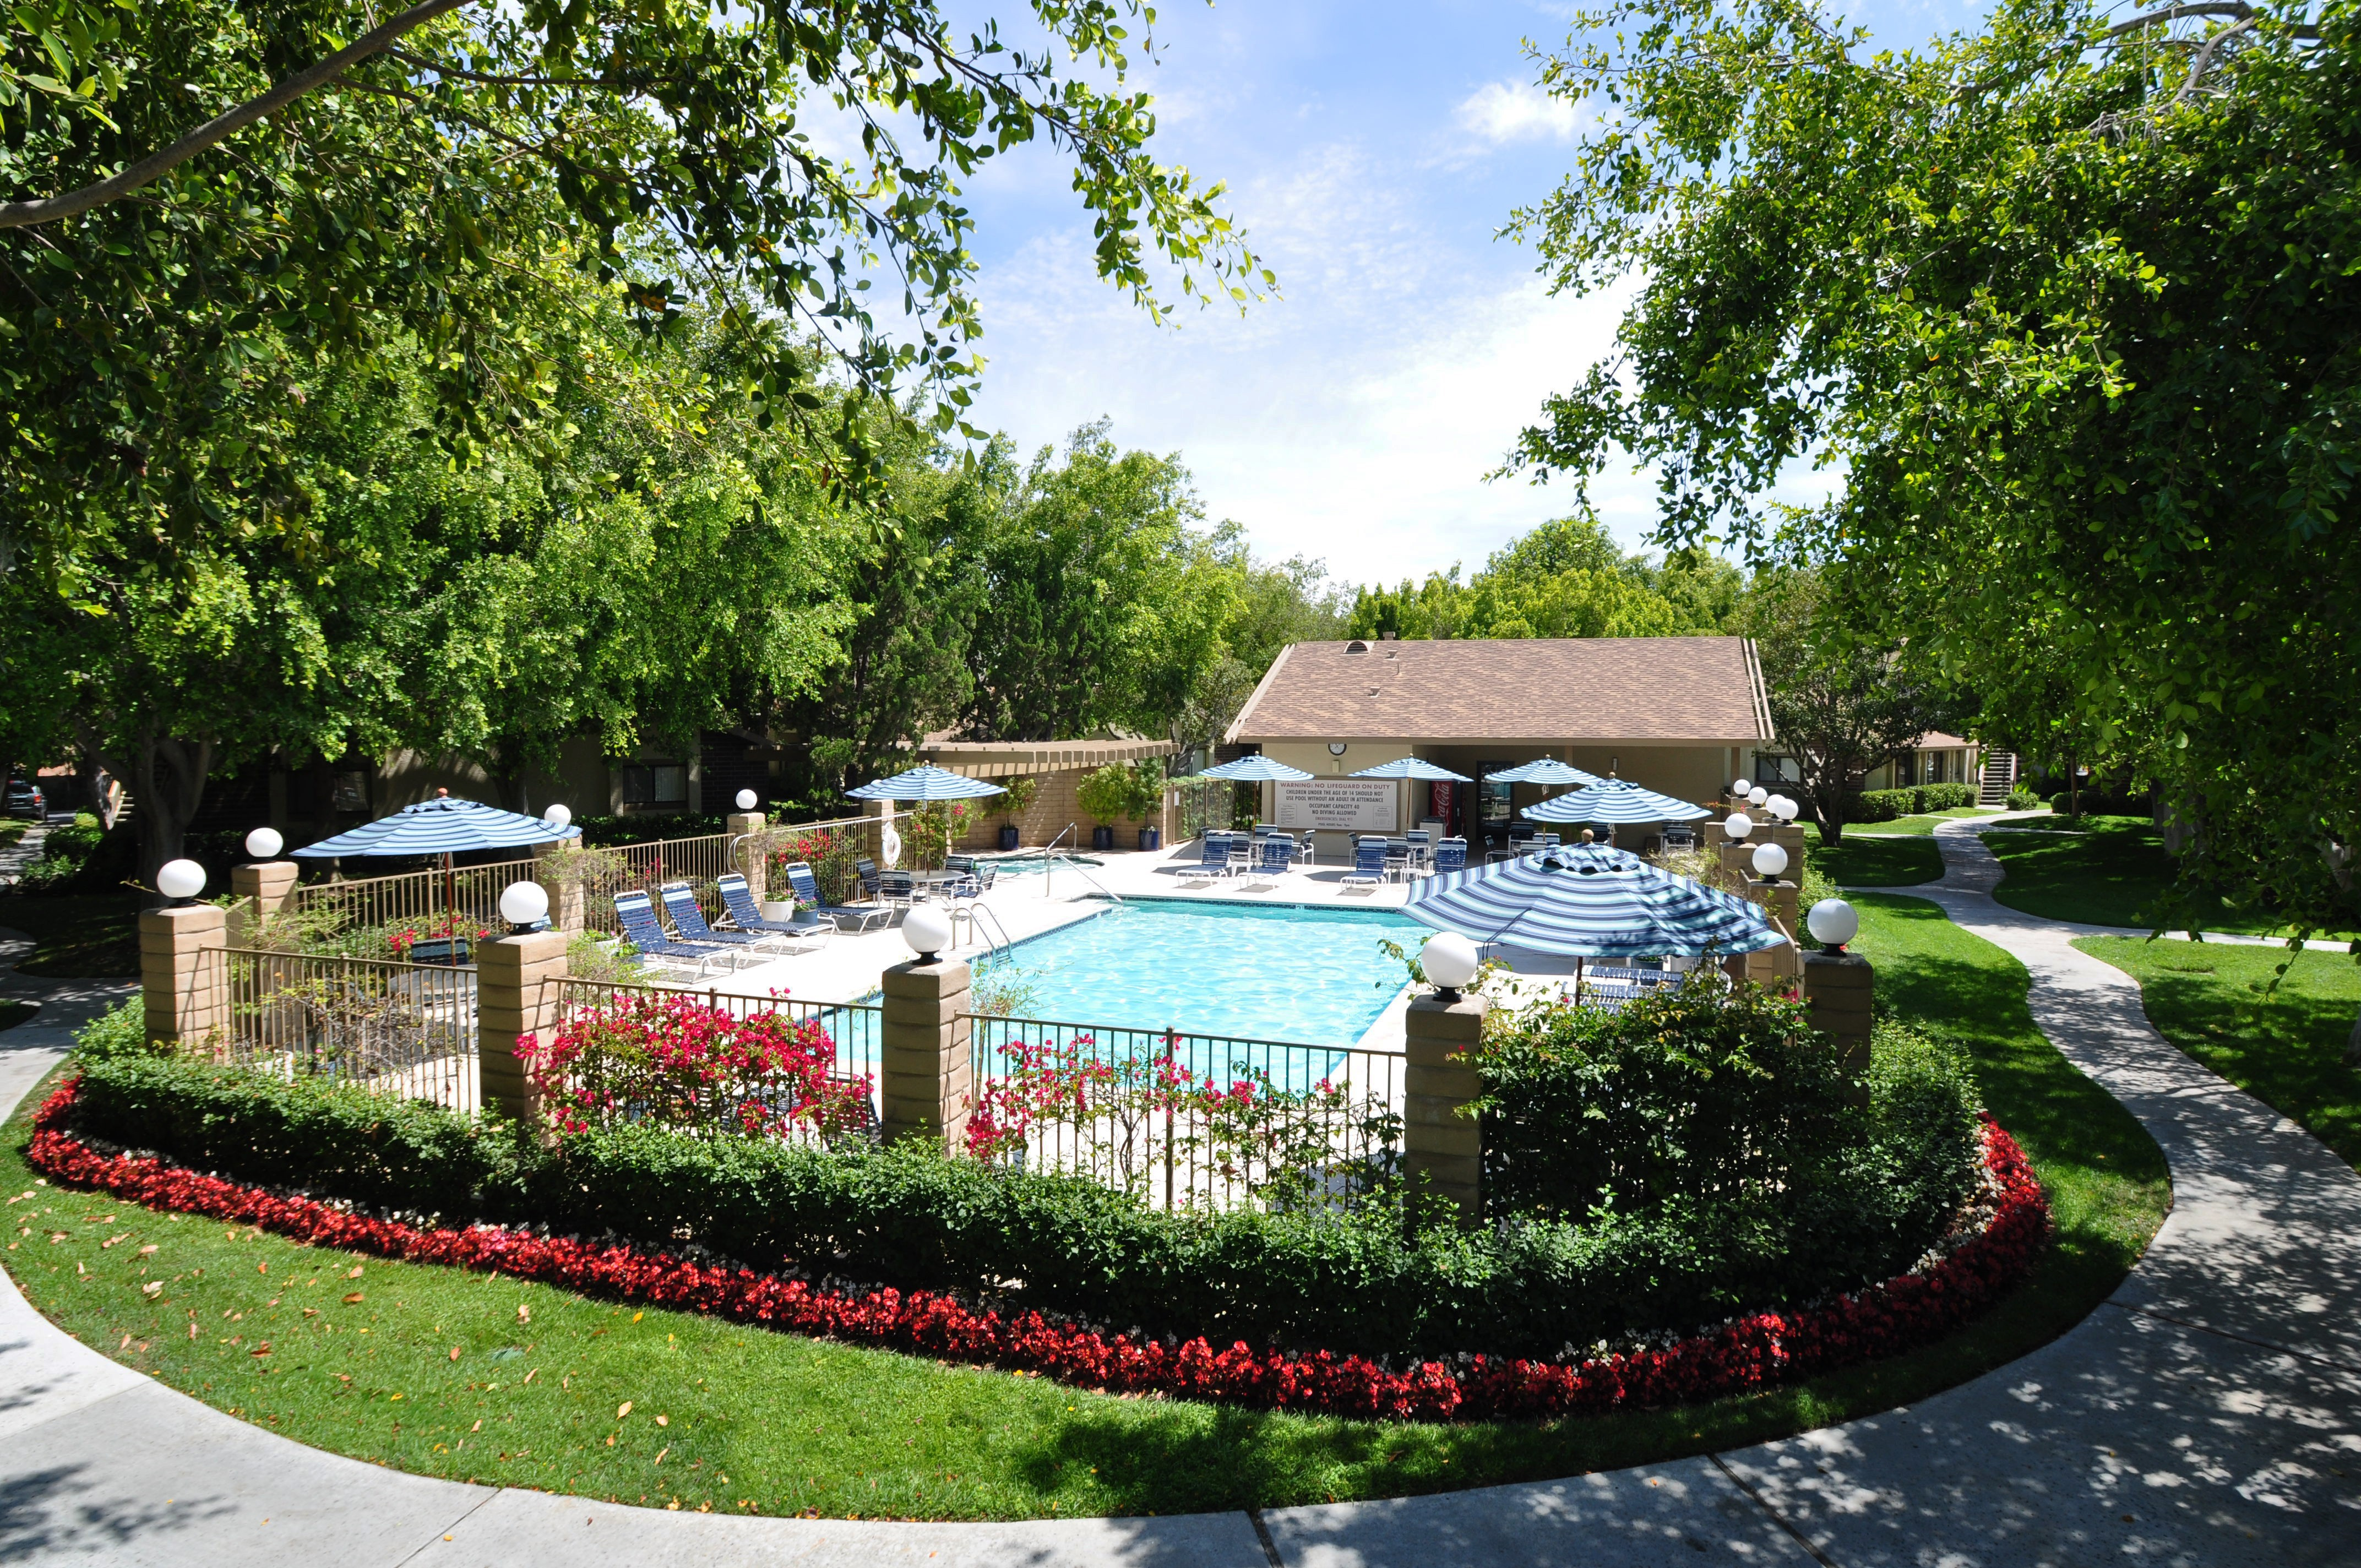 Foxwood Furnished Apartments - 4260 Palm Ave, San Diego, CA 92154 ...